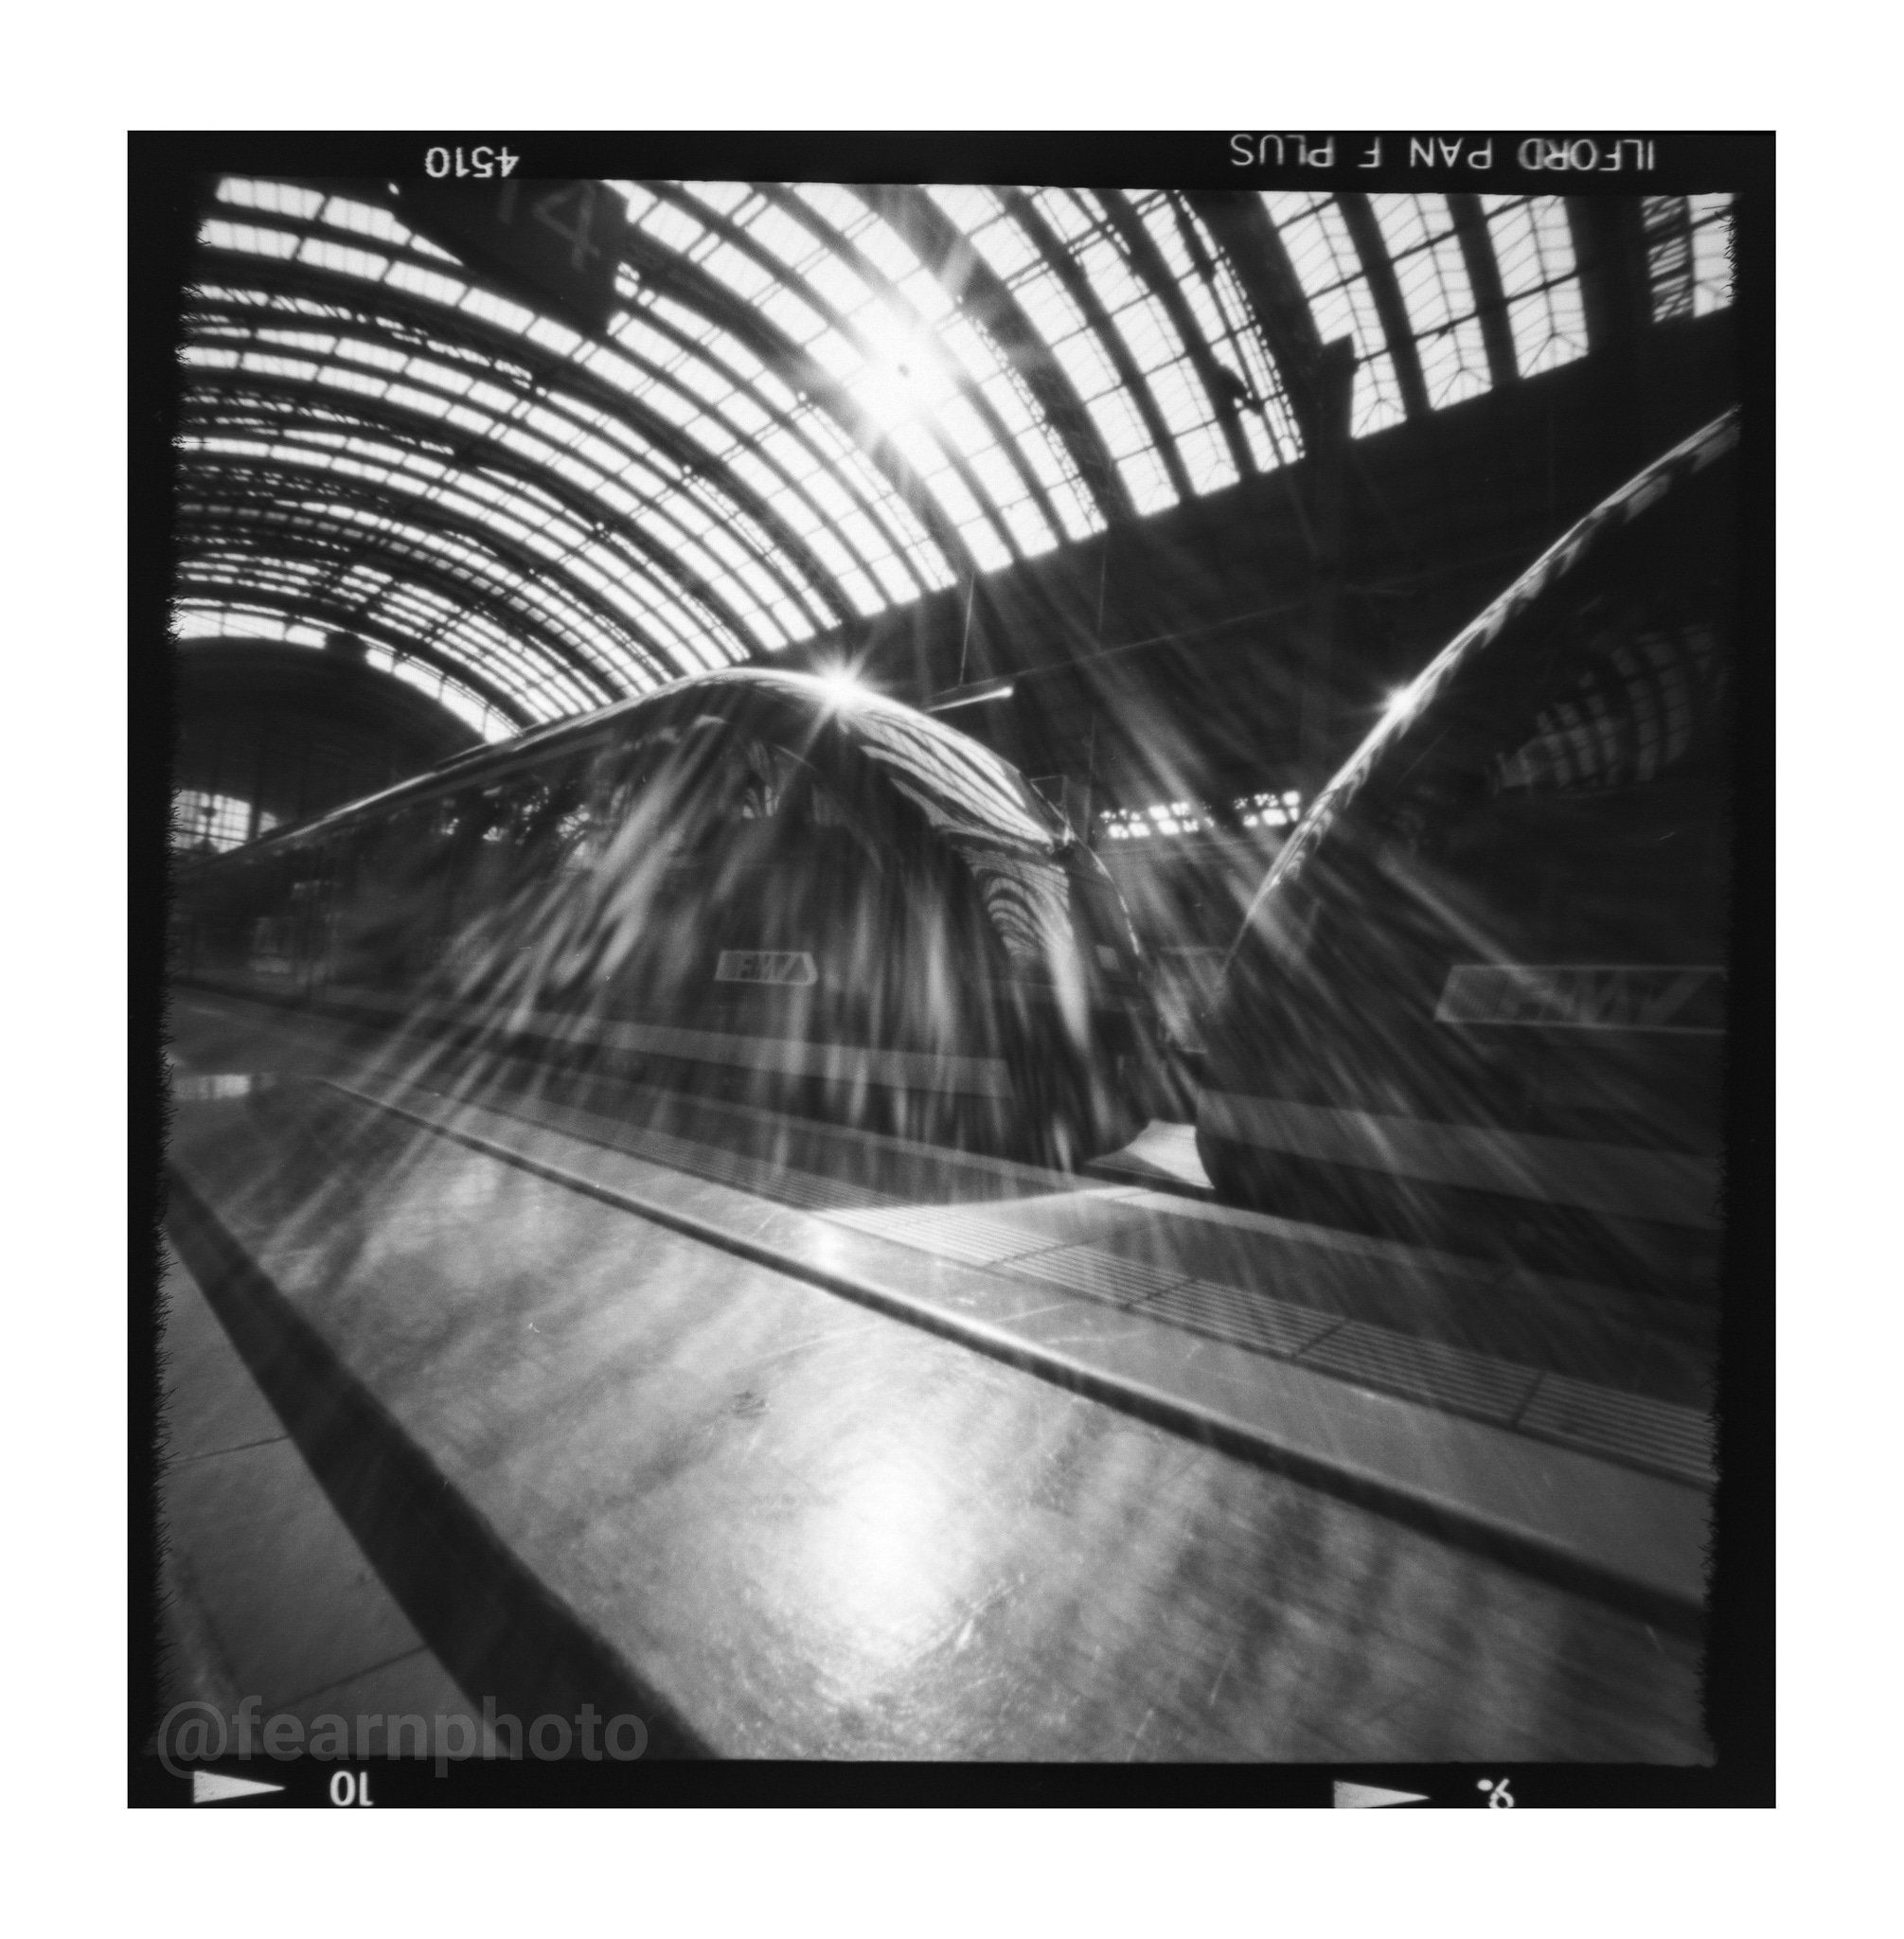 fearnphoto Frankfurt (Main) Hauptbahnhof, July 2019. 16 second exposure with #zeroimage2000 #pinhole camera. #Ilfordphoto PAN F PLUS 50 #ilfordfilm #ilfordpanf #zeroimage #pinholecamera #pinholephotography #lensless #believeinfilm #blackandwhitephotography #mediumformat #6x6film #fridayfavourites #welovefrankfurt #frankfurt @ilfordphoto